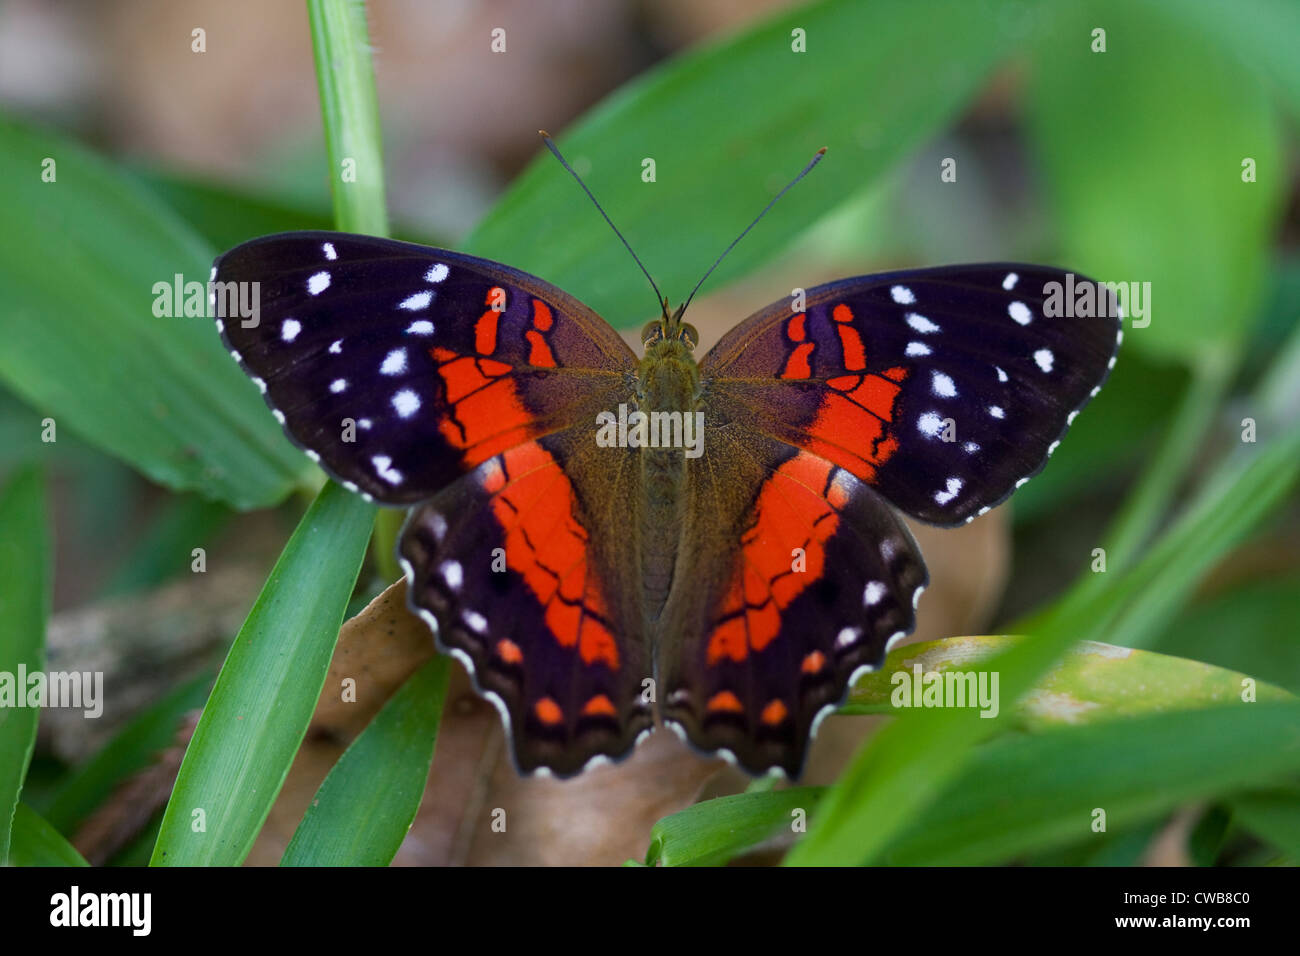 BROWN or SCARLET PEACOCK (Anartia amathea) Burro-Burro river, Iwokrama forest reserve, Guyana. - Stock Image